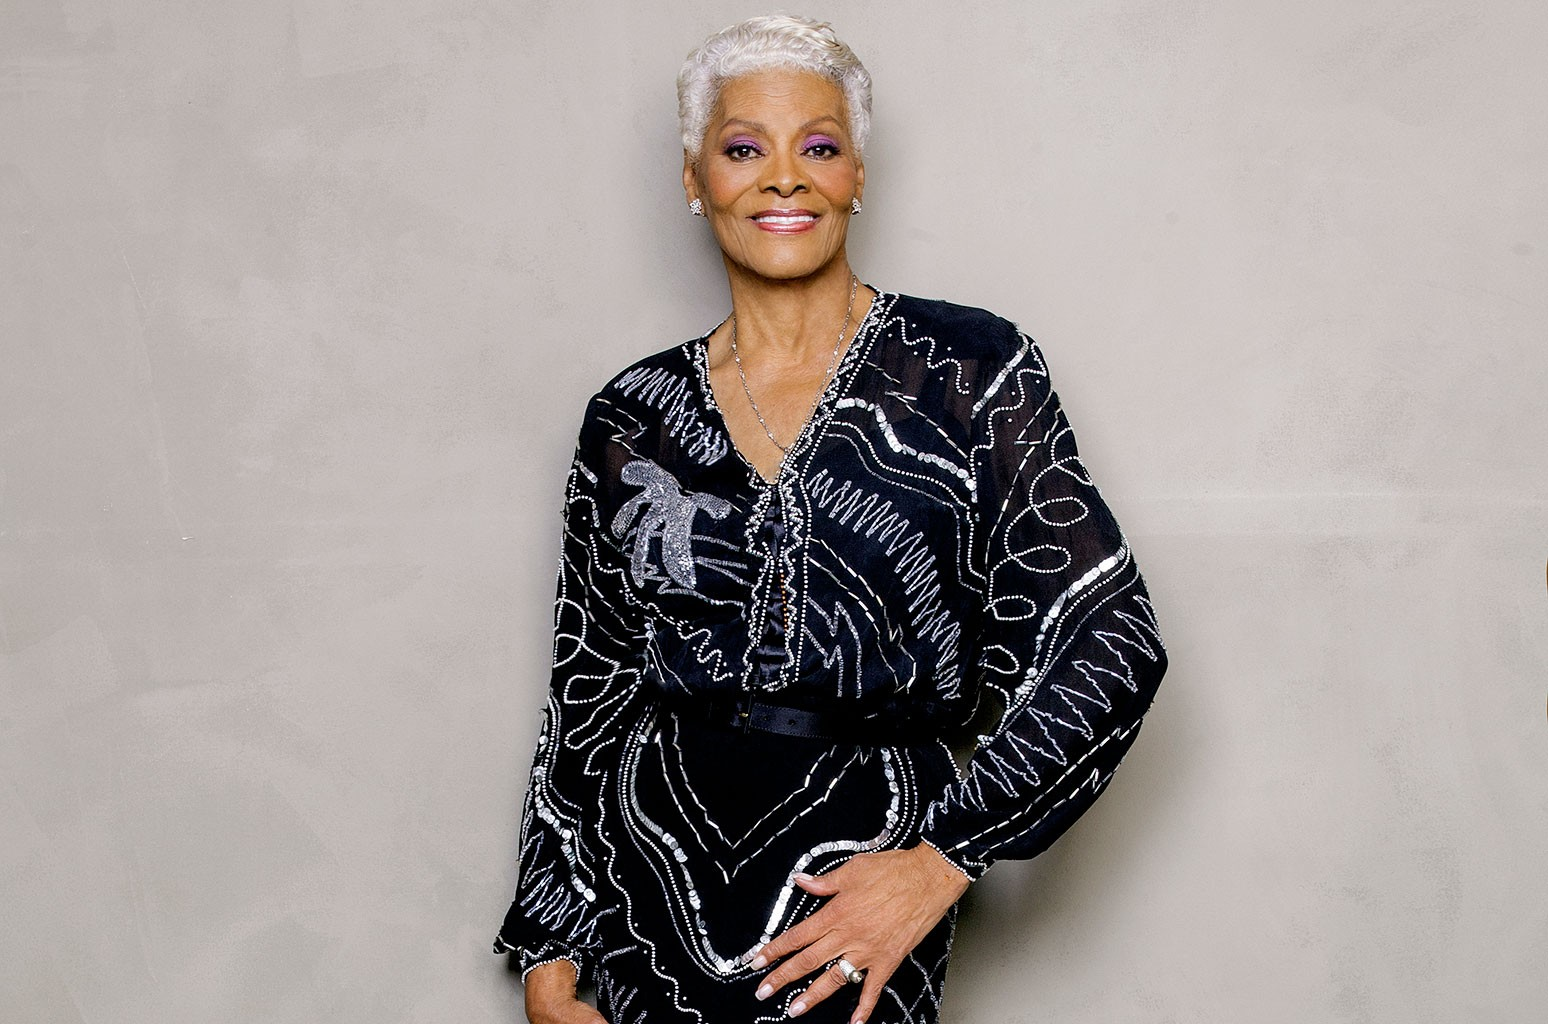 Dionne Warwick Talks Possible Collabs With Taylor Swift, Patti LaBelle & Gladys Knight During Billboard's Twit - Billboard